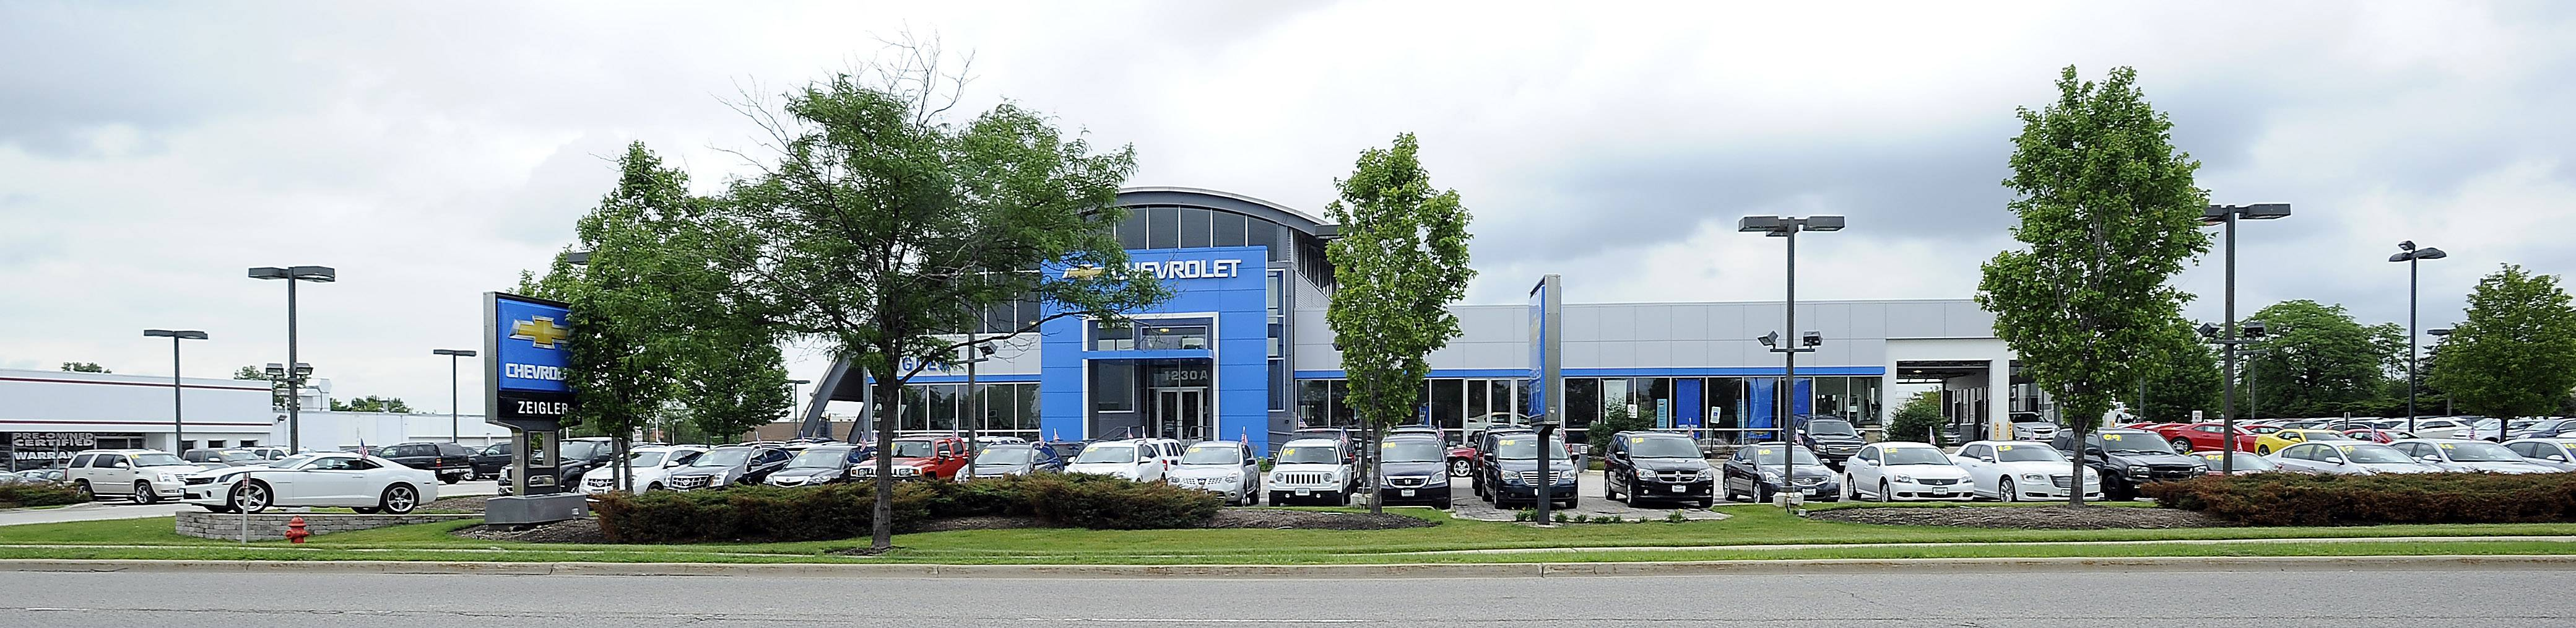 Zeigler Chevrolet in Schaumburg earned General Motors' Mark of Excellence for customer service in 2012 and 2013.